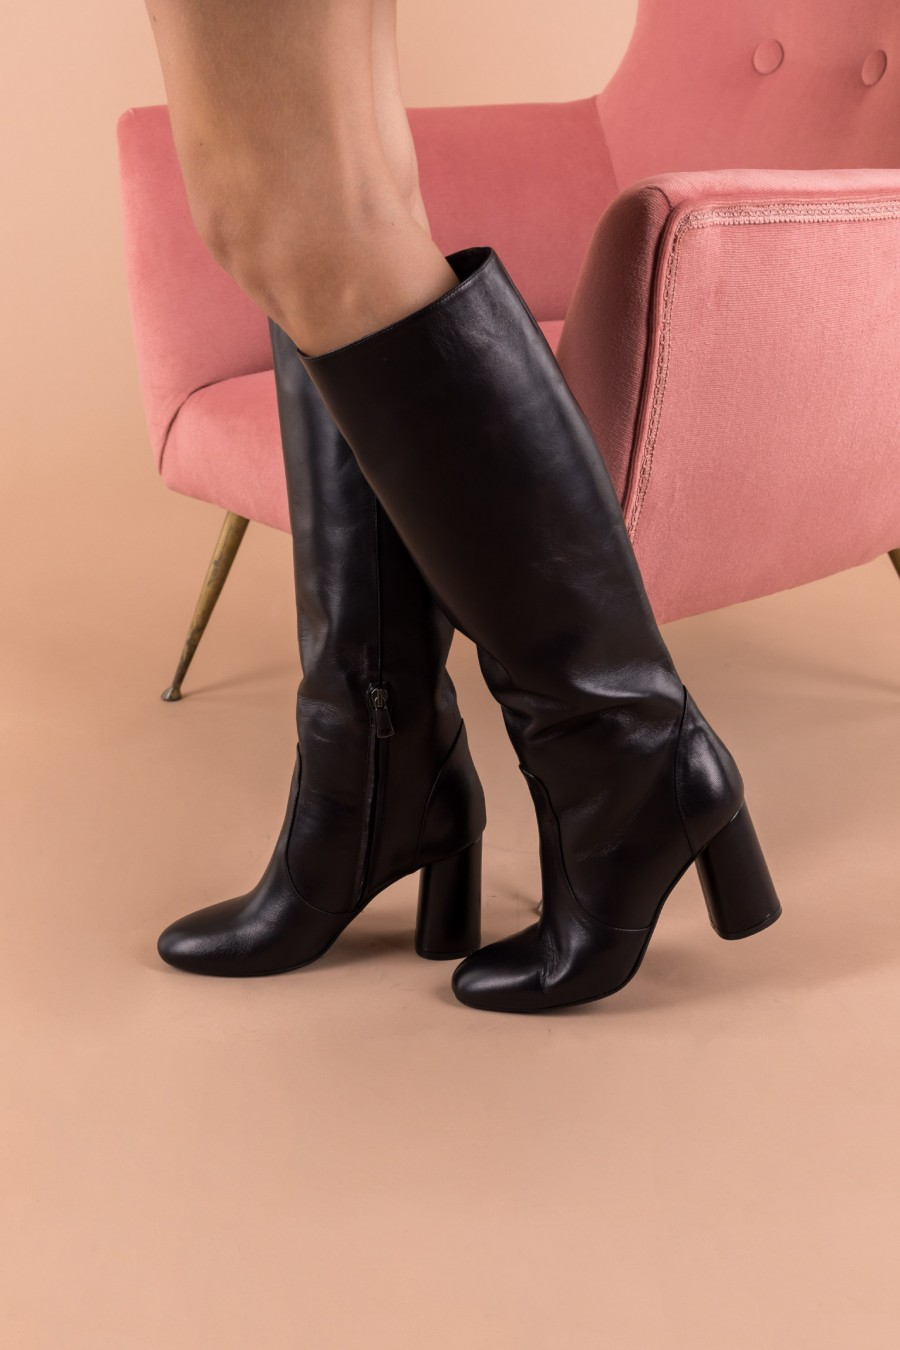 Tube-shaped boots with high heels